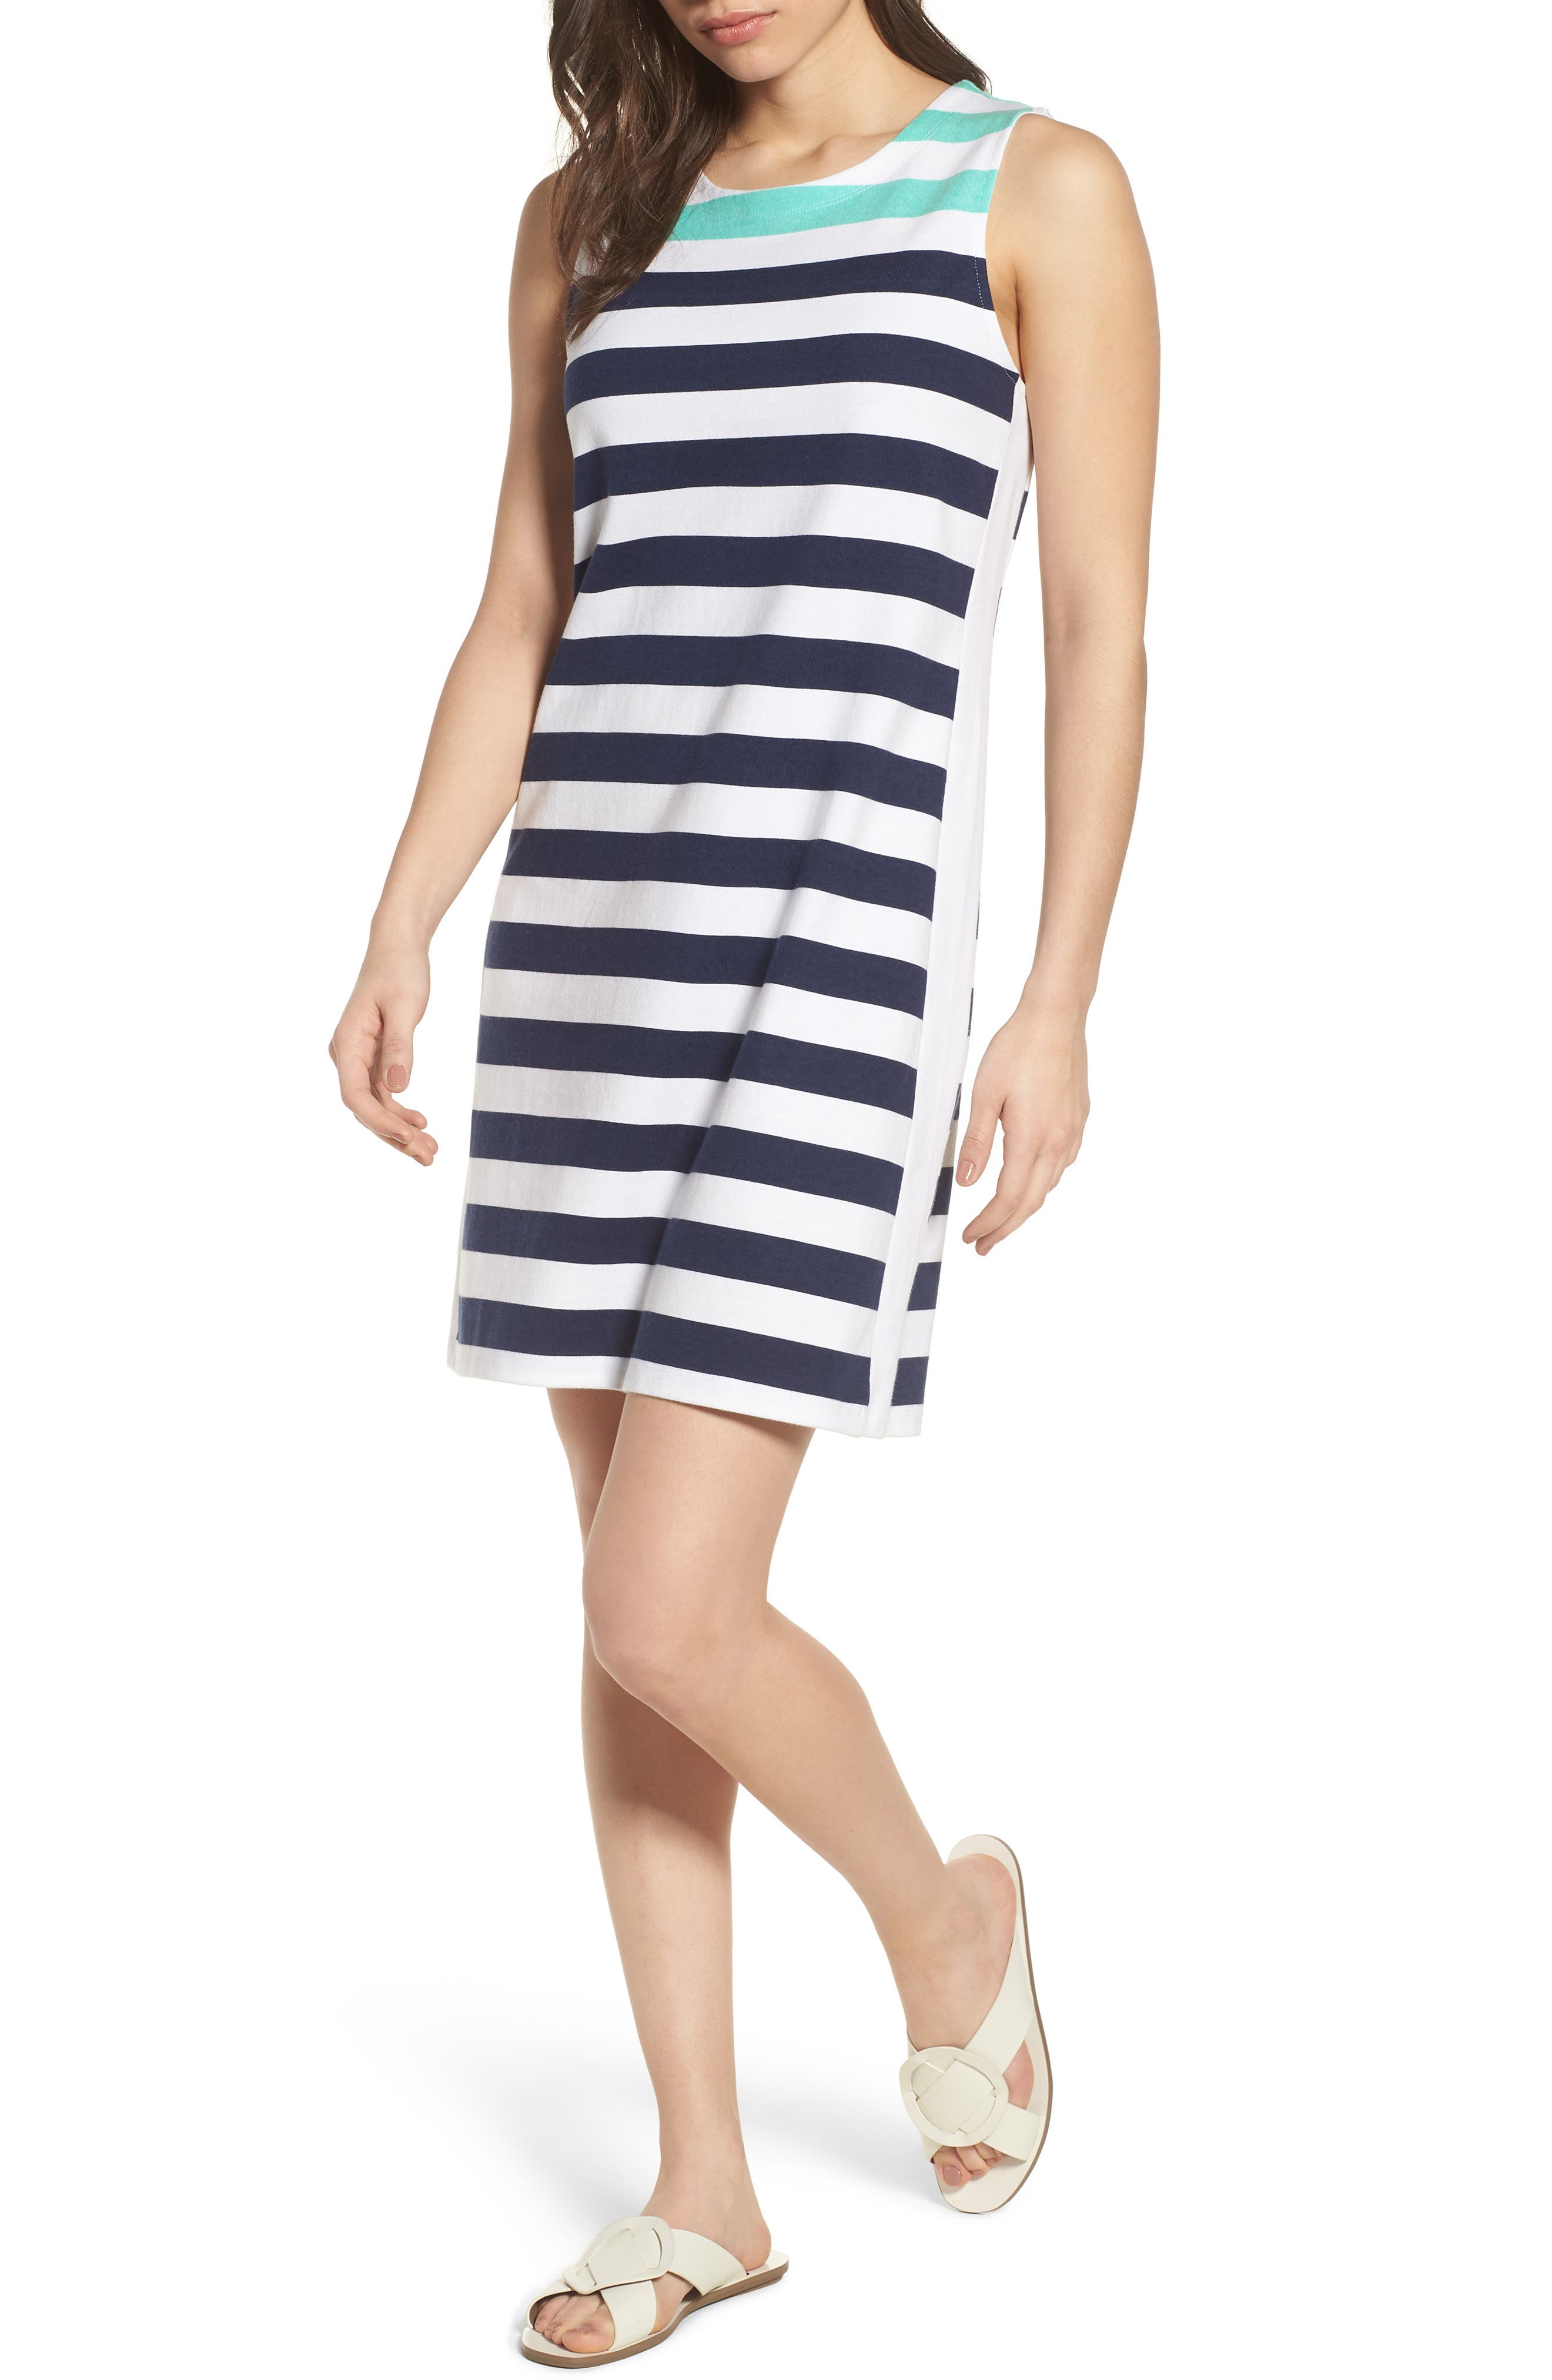 Alternate Image 1 Selected - vineyard vines Contrast Stripe Sleeveless Cotton Knit Dress